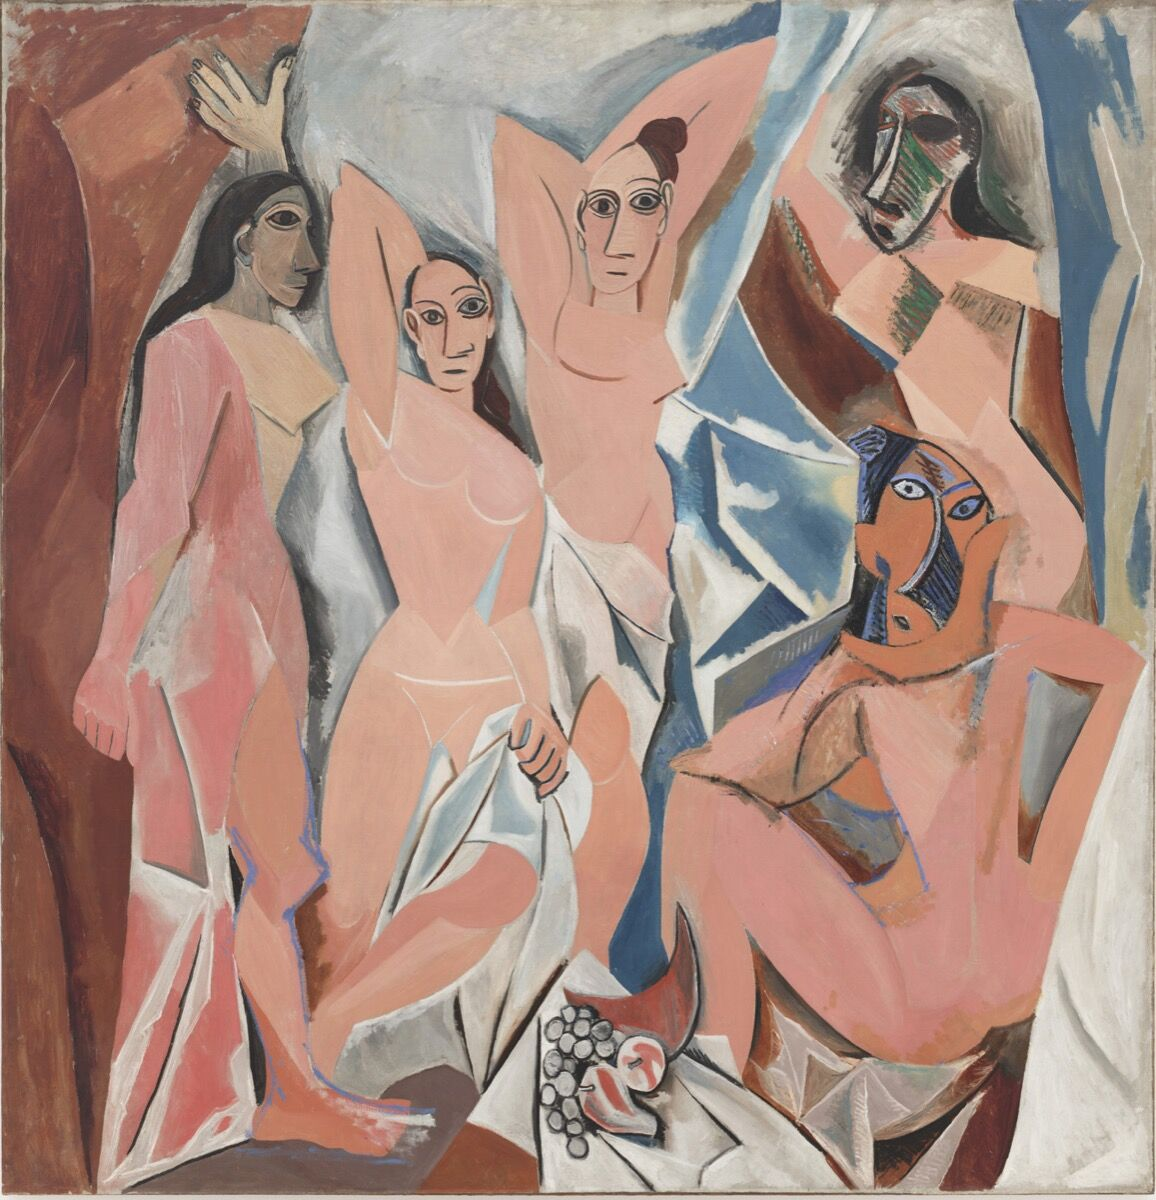 Pablo Picasso.  Les Demoiselles d'Avignon . 1907. © 2004 Estate of Pablo Picasso / Artists Rights Society (ARS), New York. Courtesy of the Museum of Modern Art.